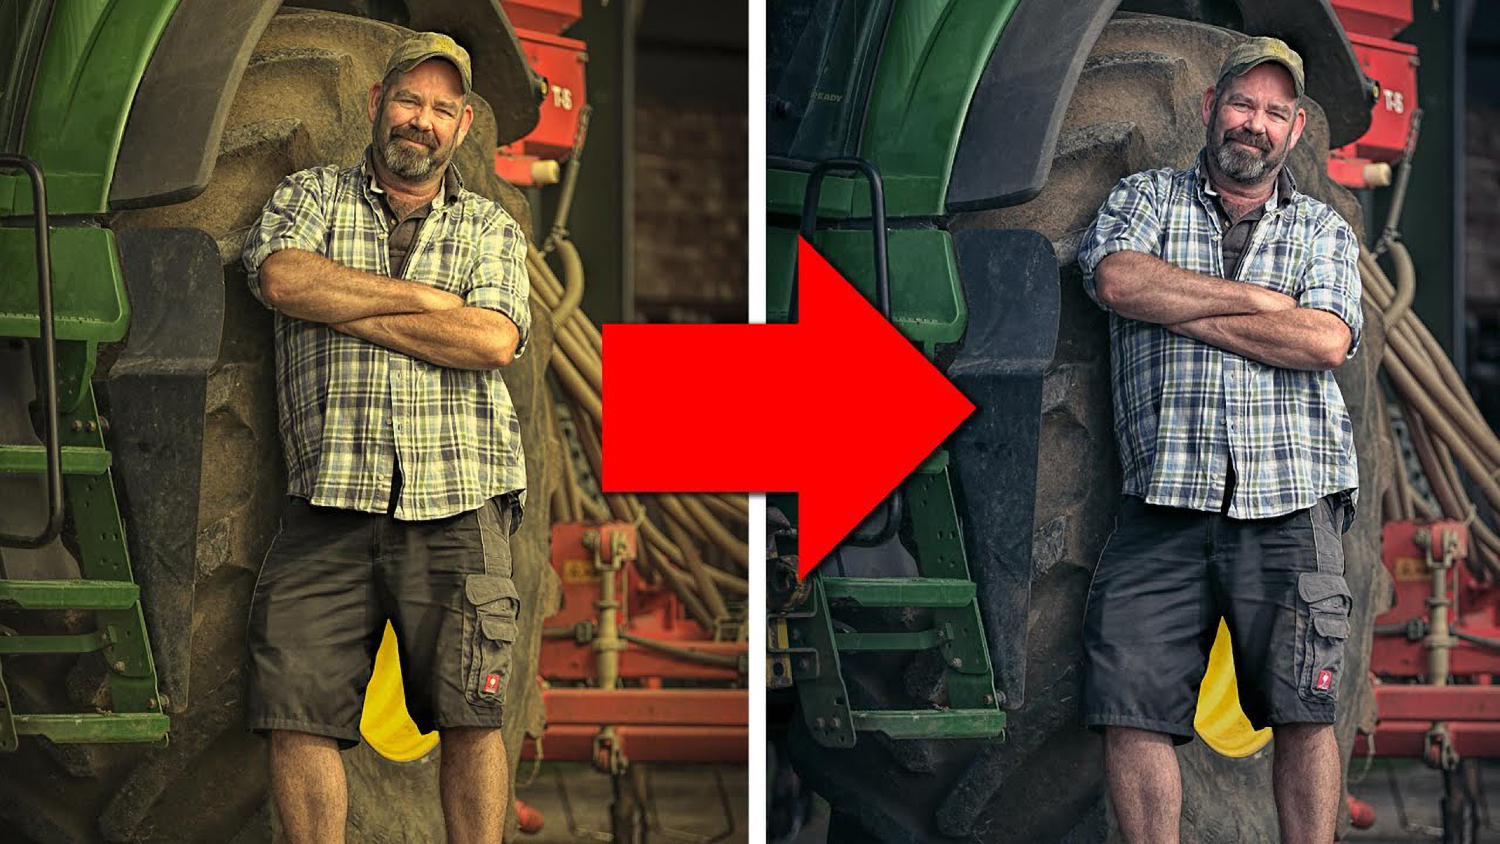 Photo for color correction trick in Photoshop